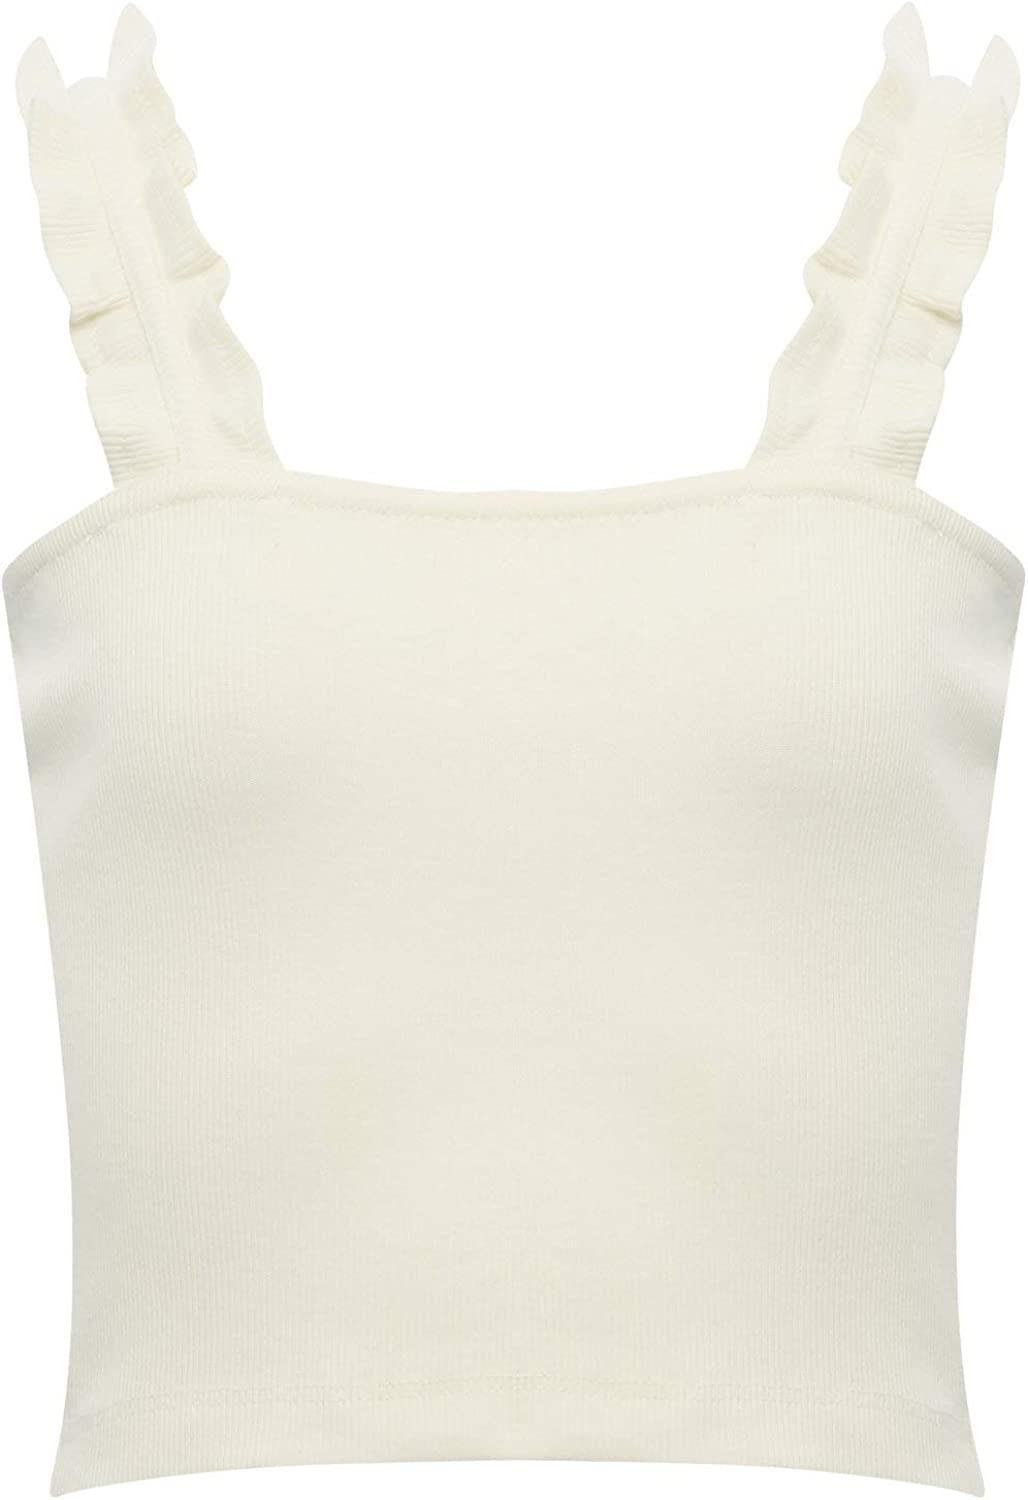 M/&Co Teen Girl Cropped Vest Top